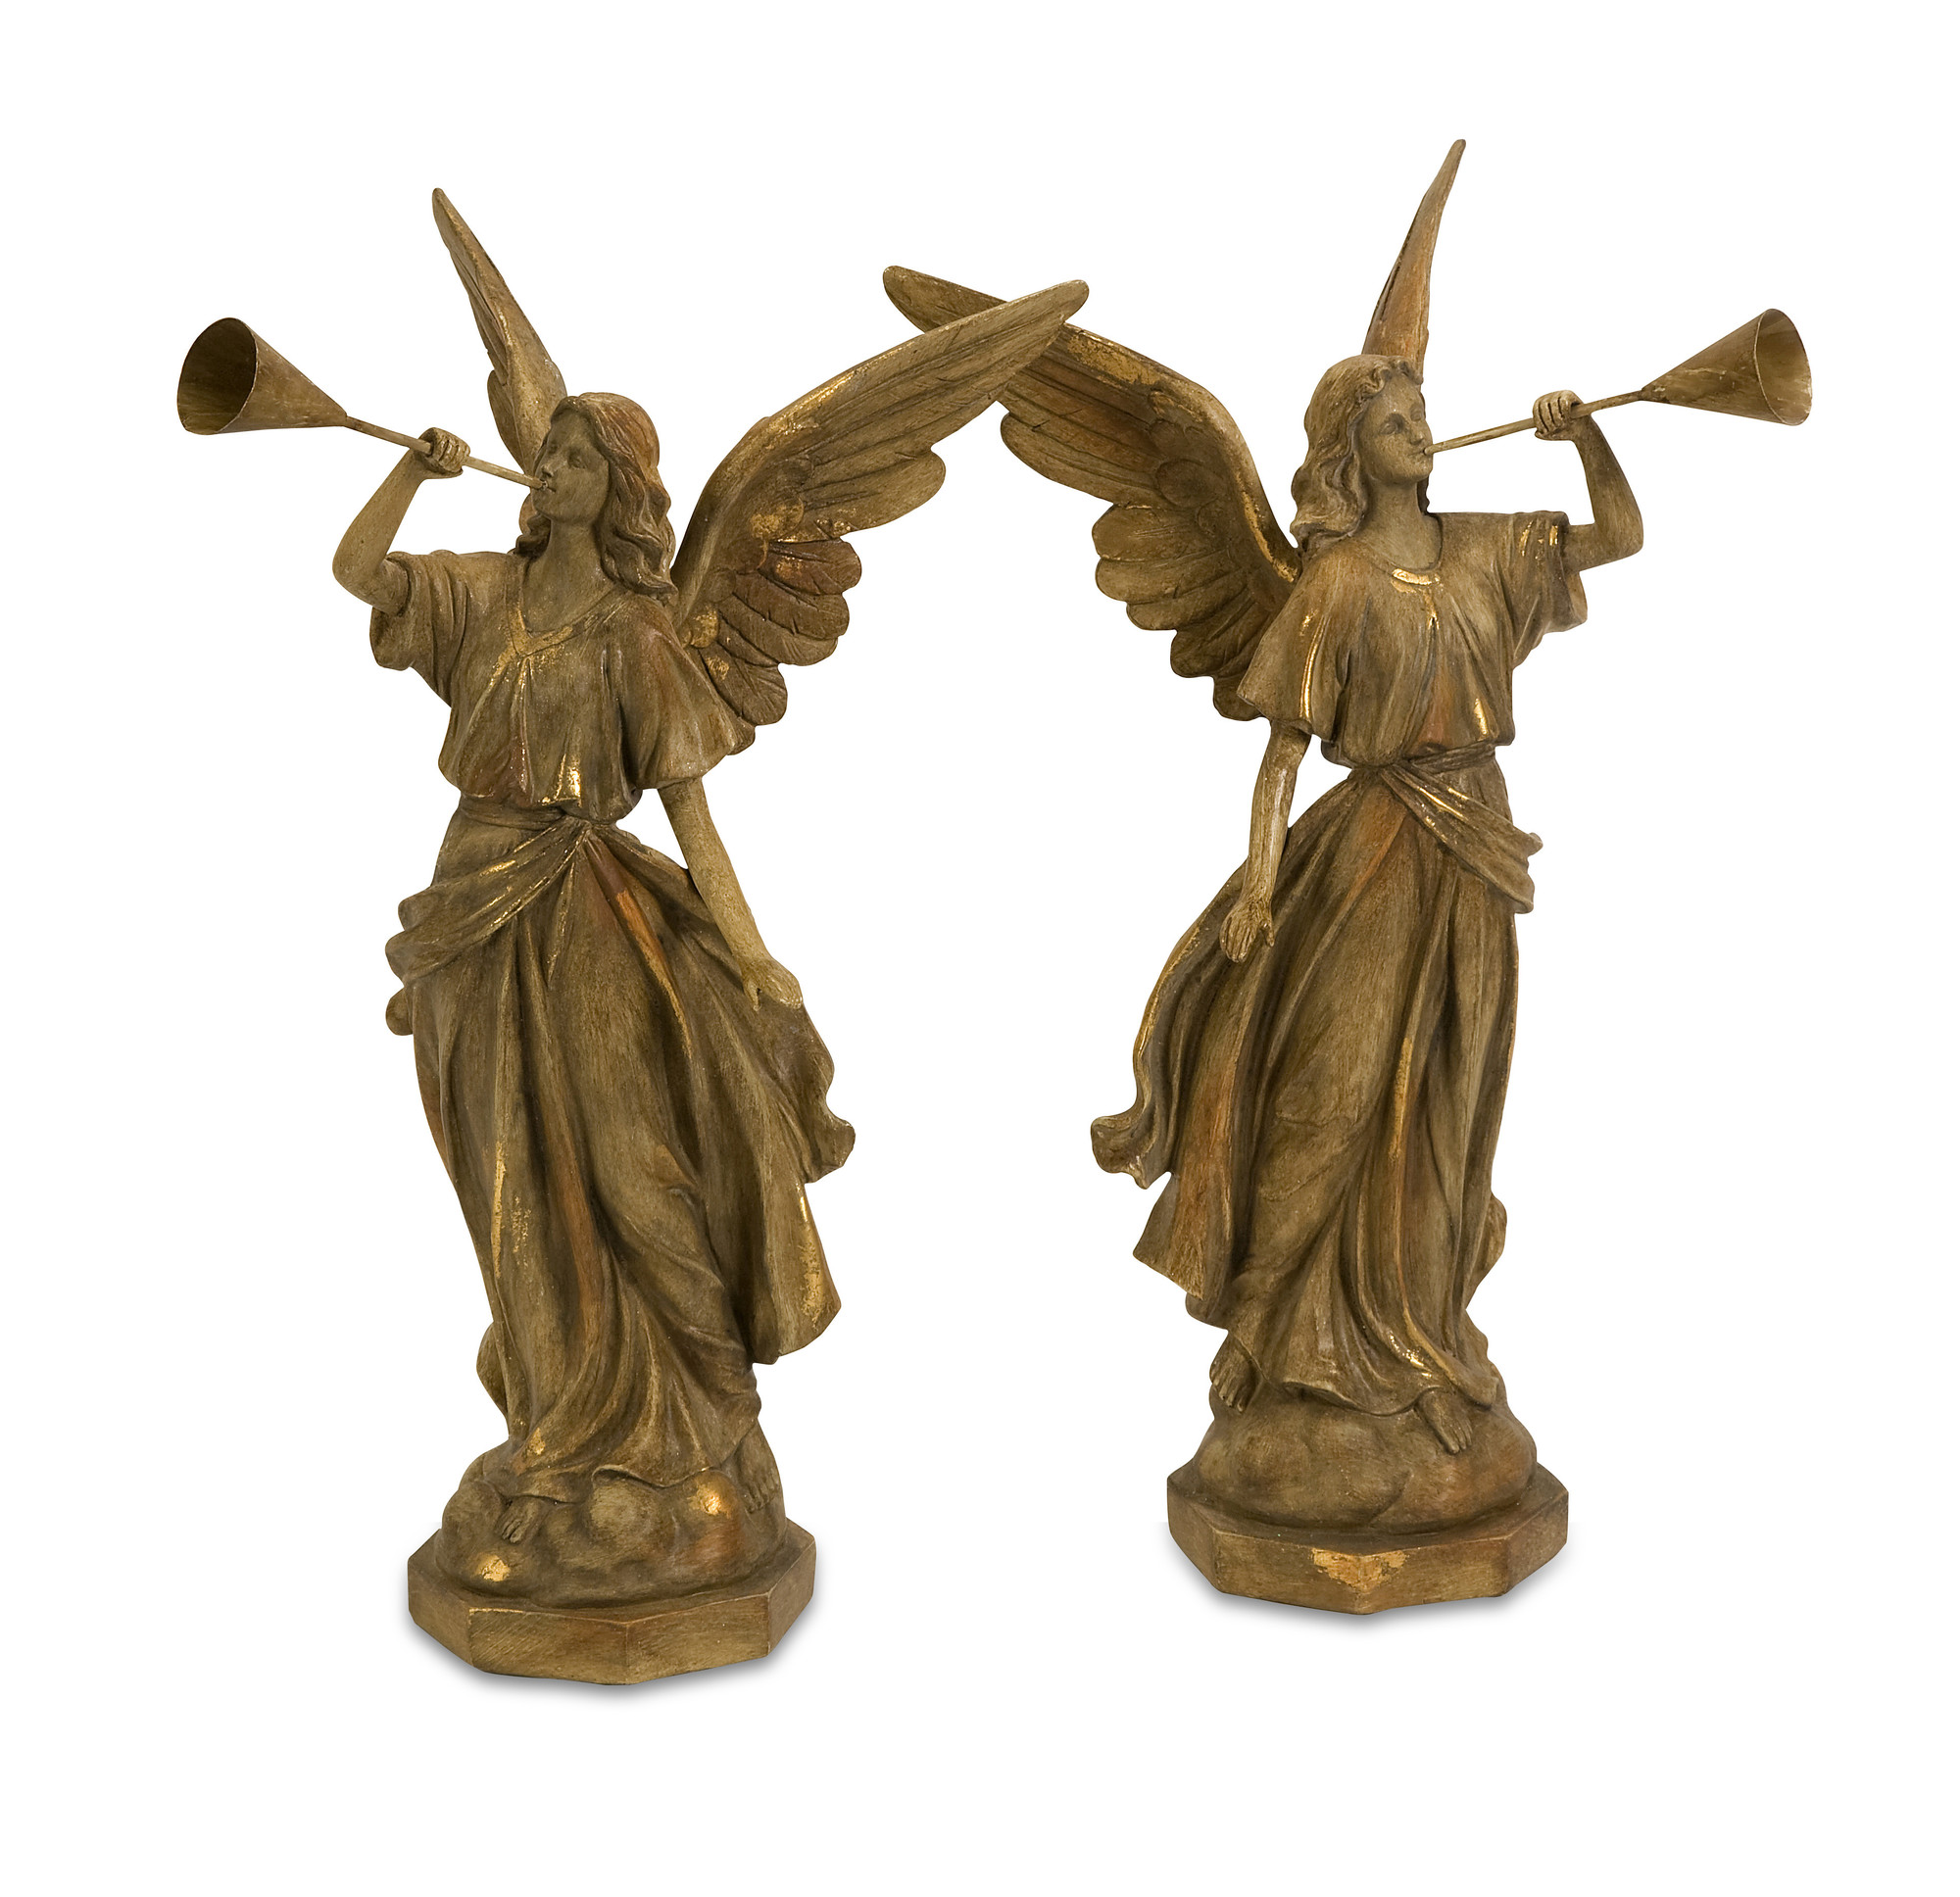 Christmas Statue Decorations: 22 Awesome Christmas Figurine Decorations